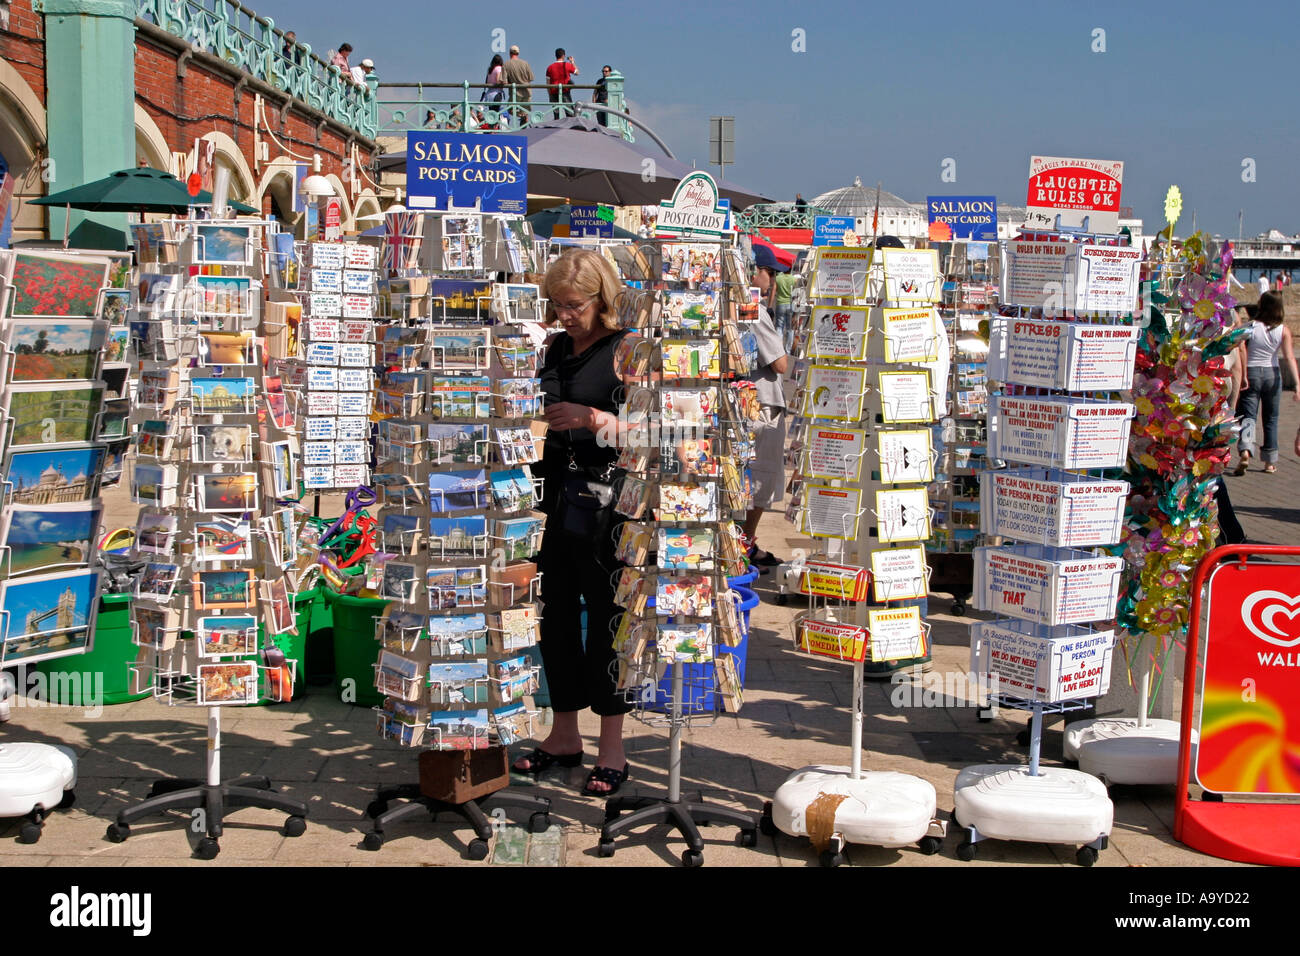 Seaside postcards for sale on promenade. Brighton, England - Stock Image